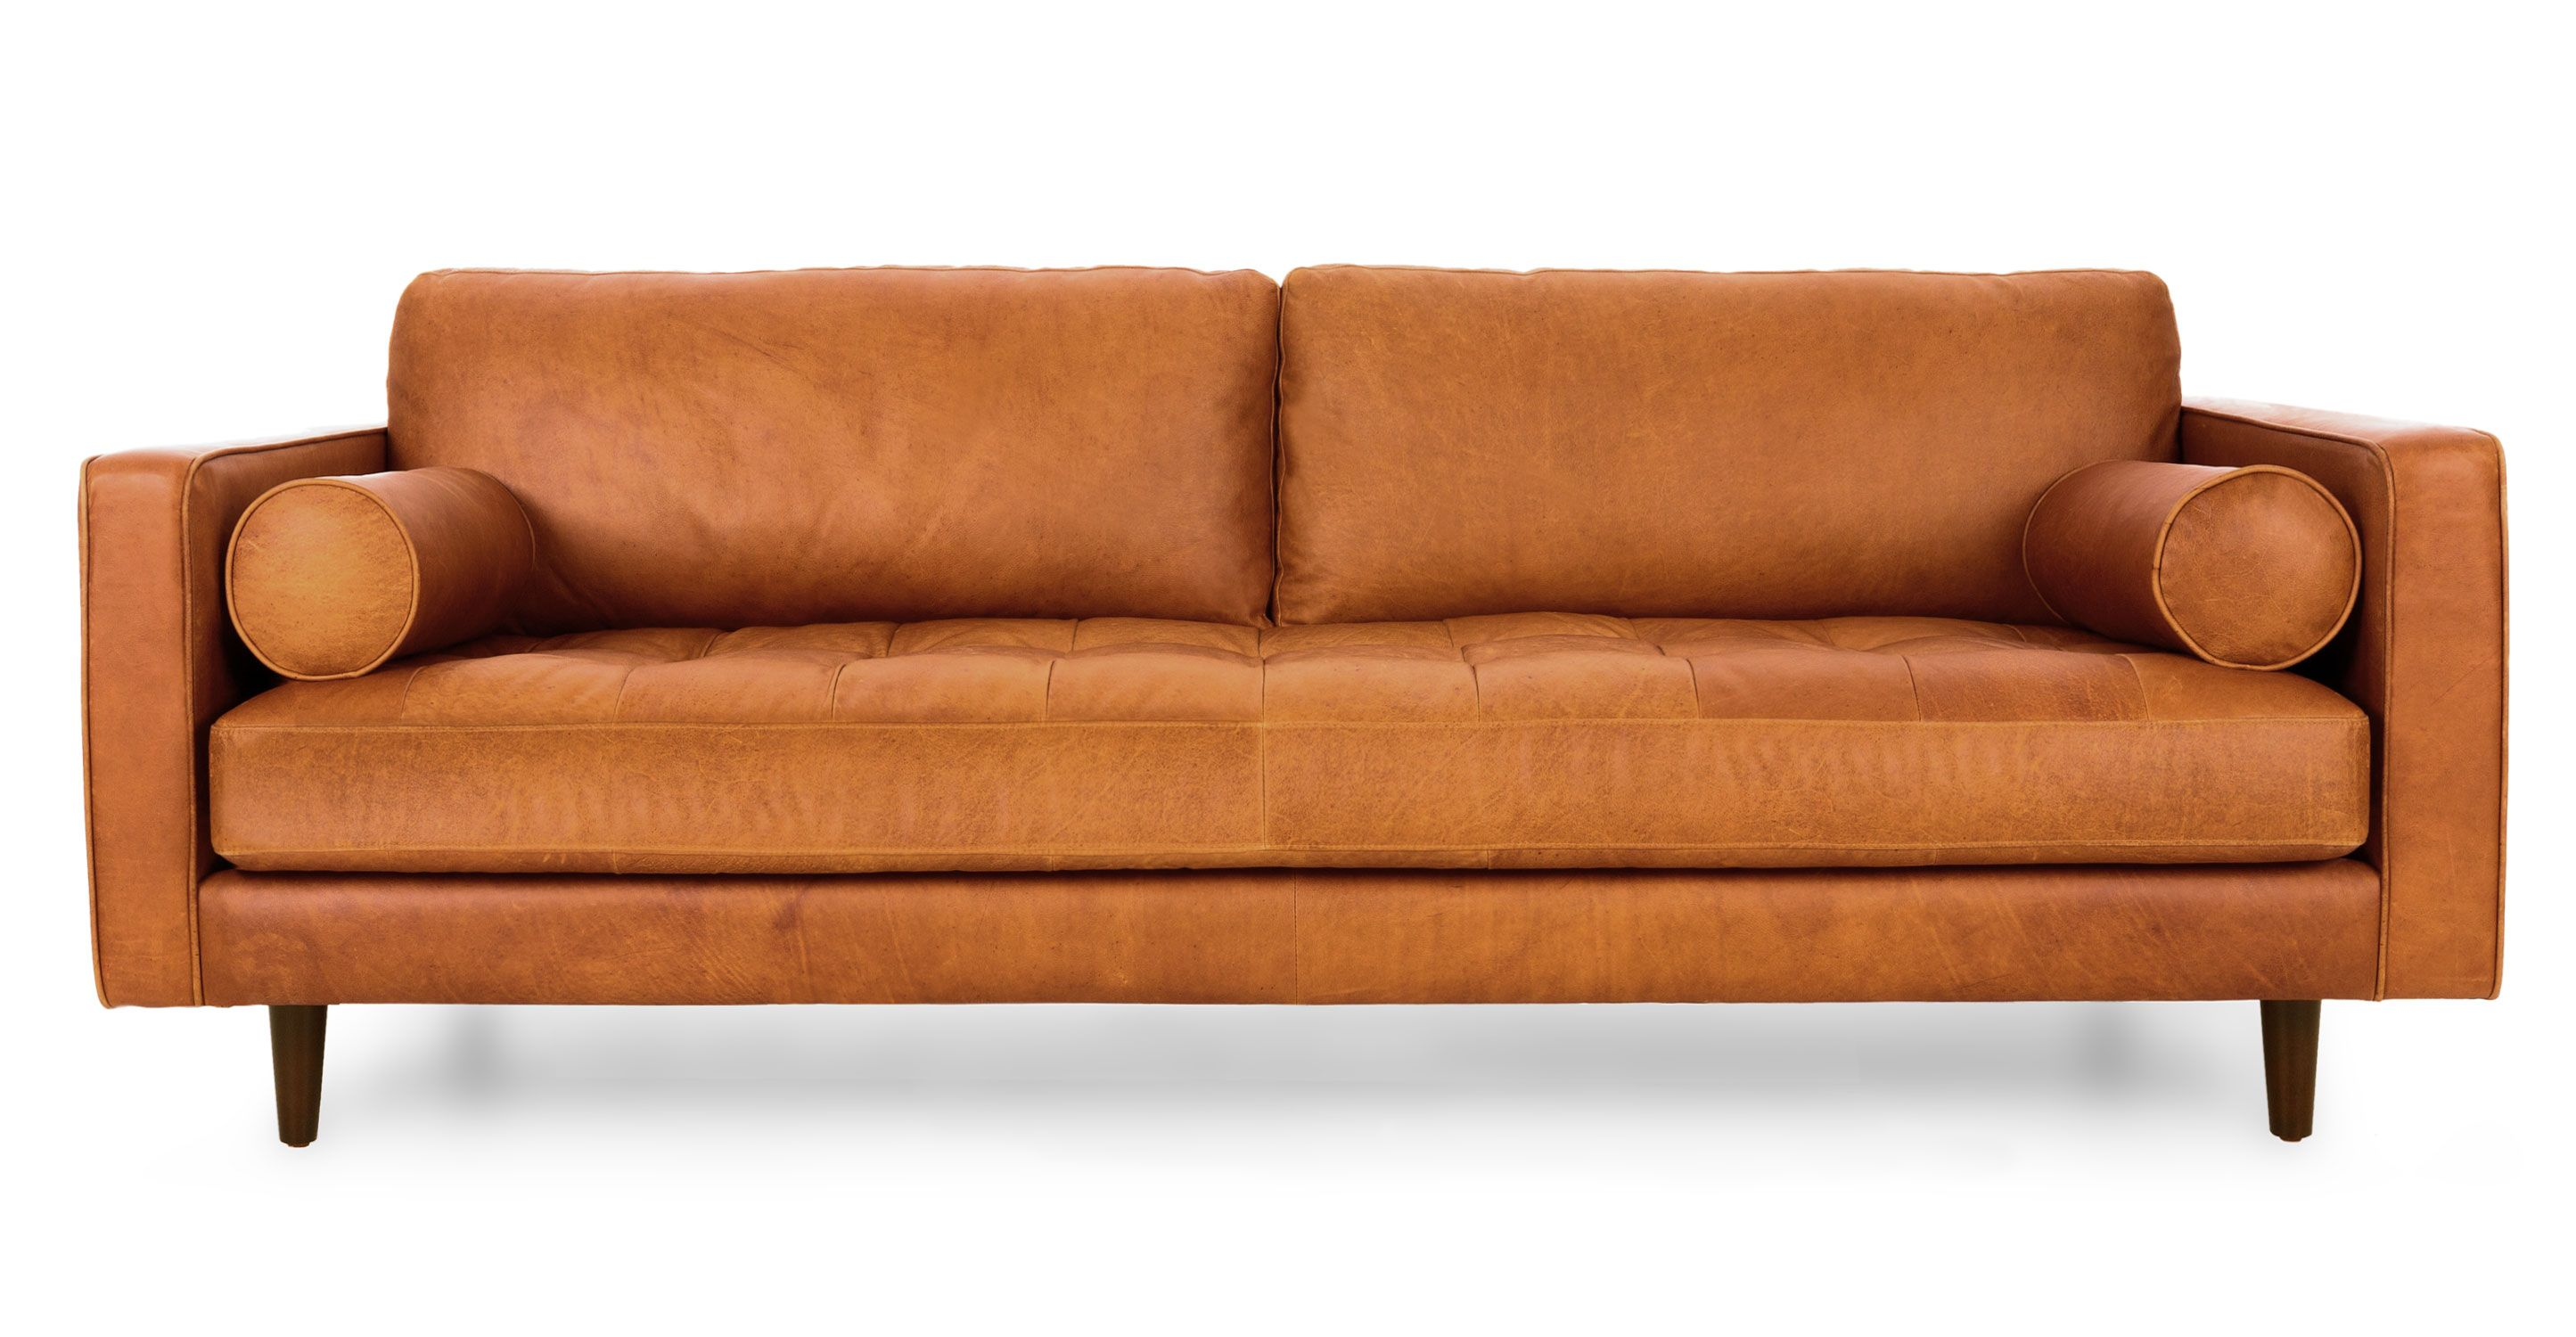 Tan brown leather sofa italian leather article sven for New mid century furniture